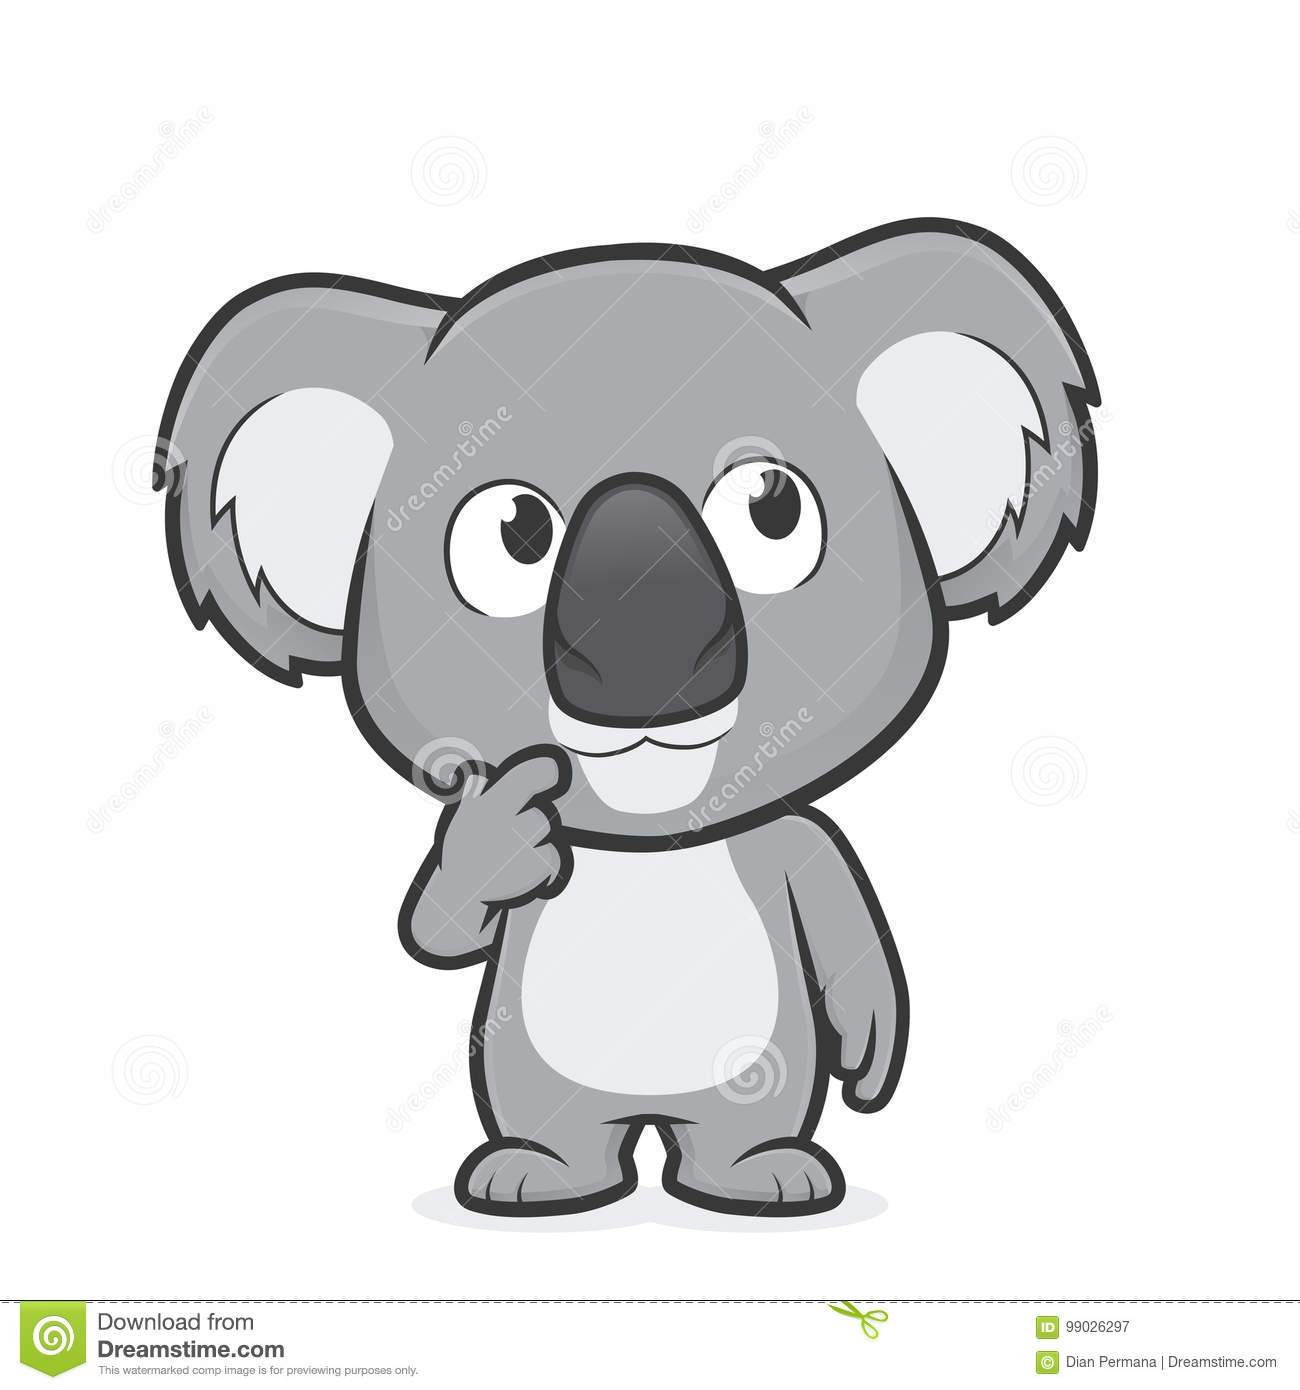 Clipart koalas png black and white library Koalas clipart » Clipart Portal png black and white library